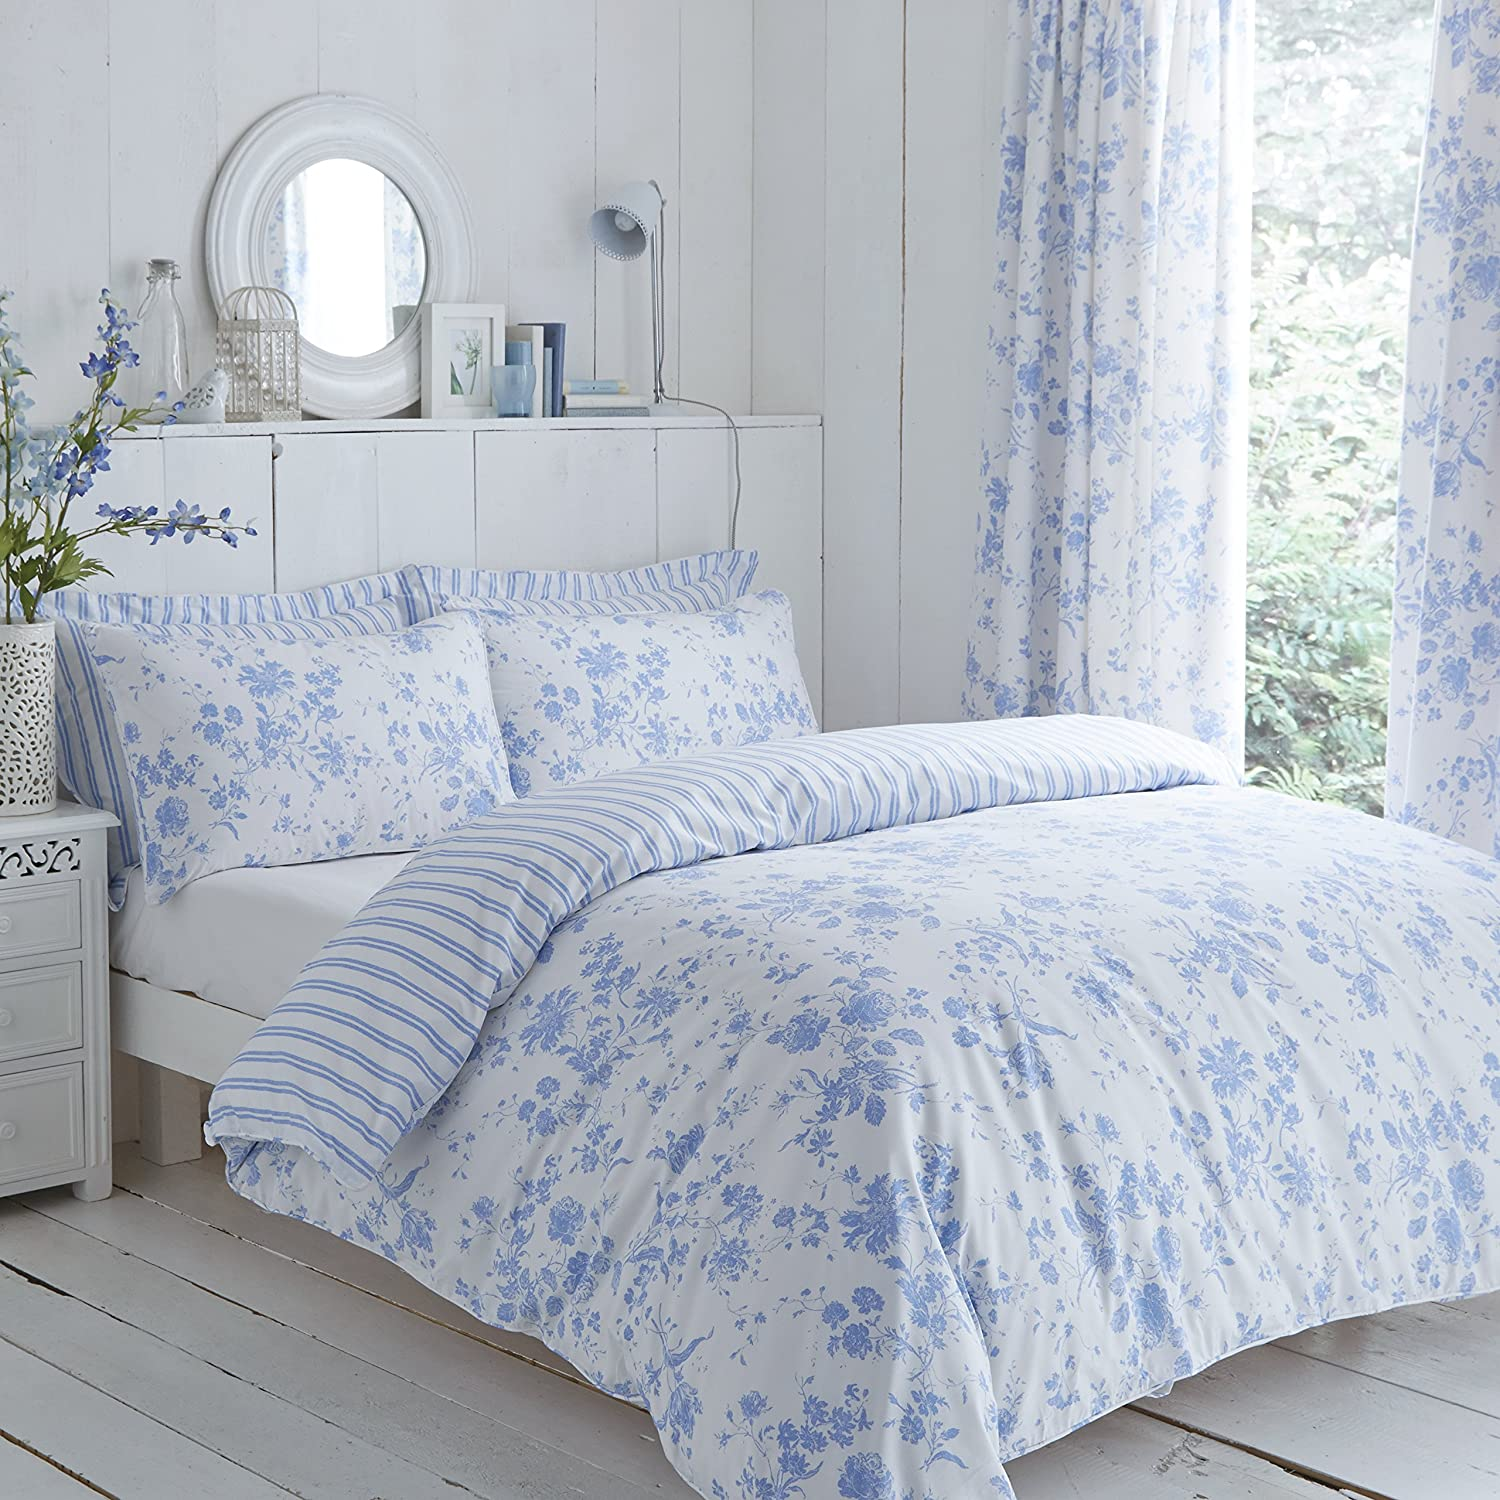 and essentials bedding embroidered cover for white anthropologie spring blue duvet argenta candie trendy